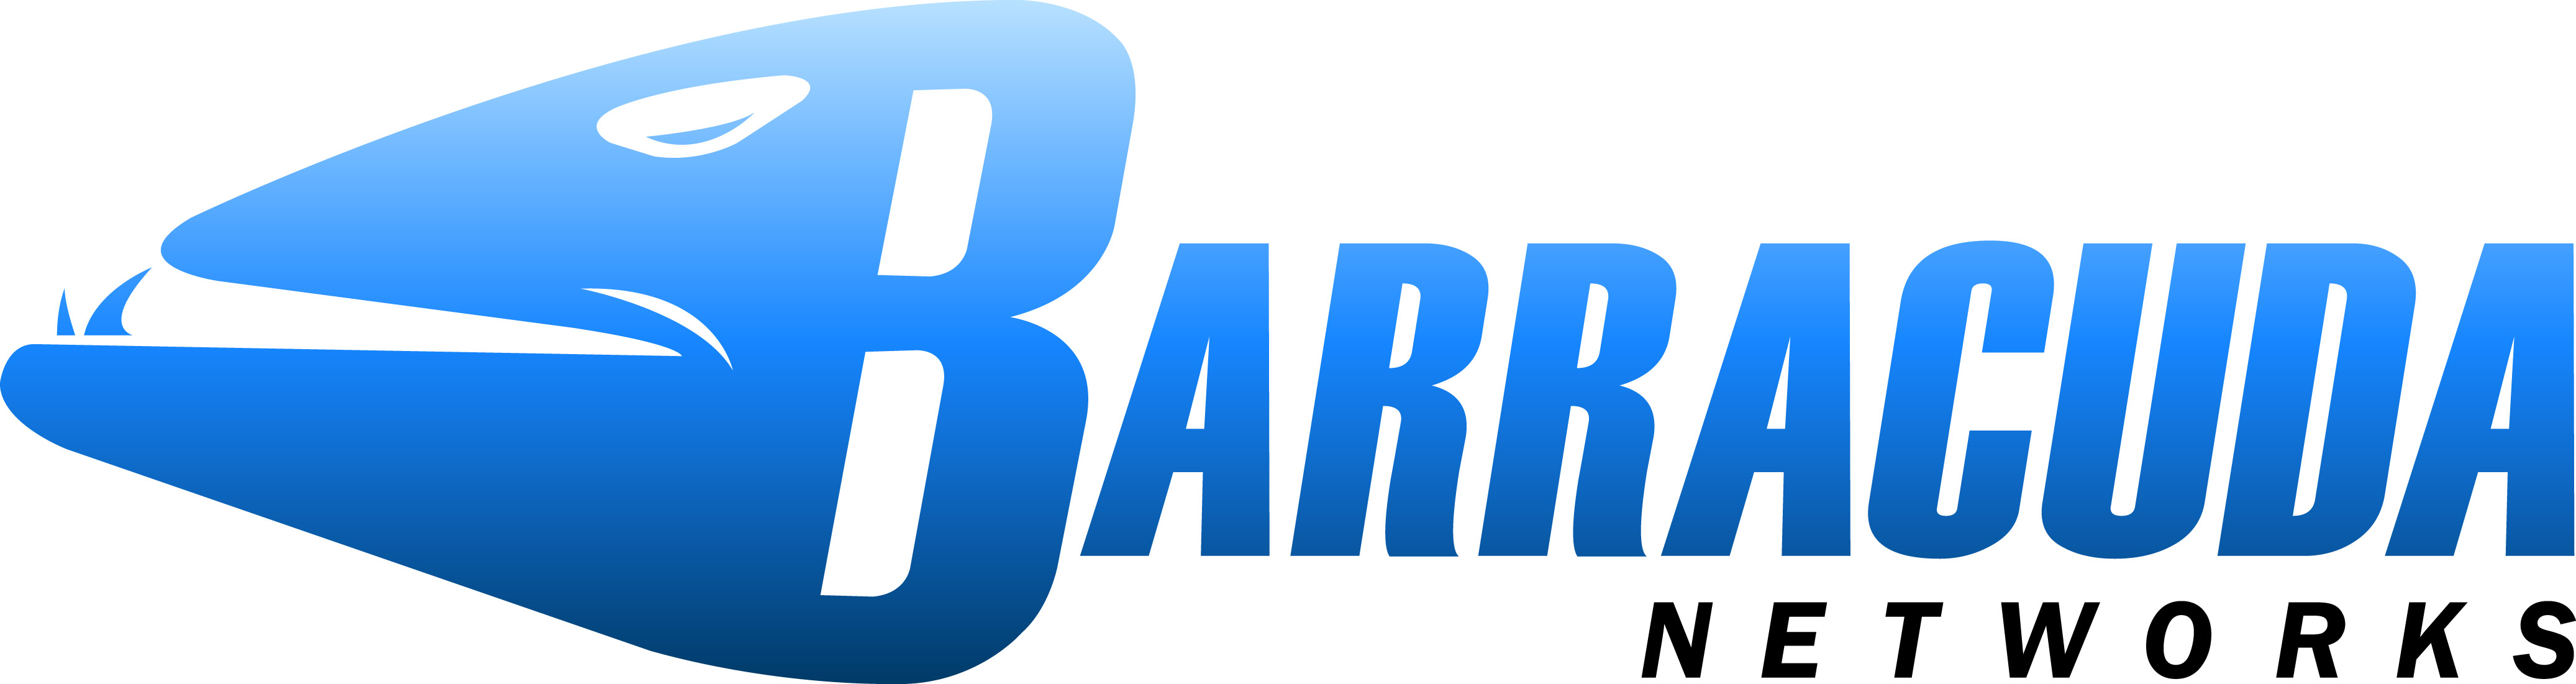 Barracuda Logos